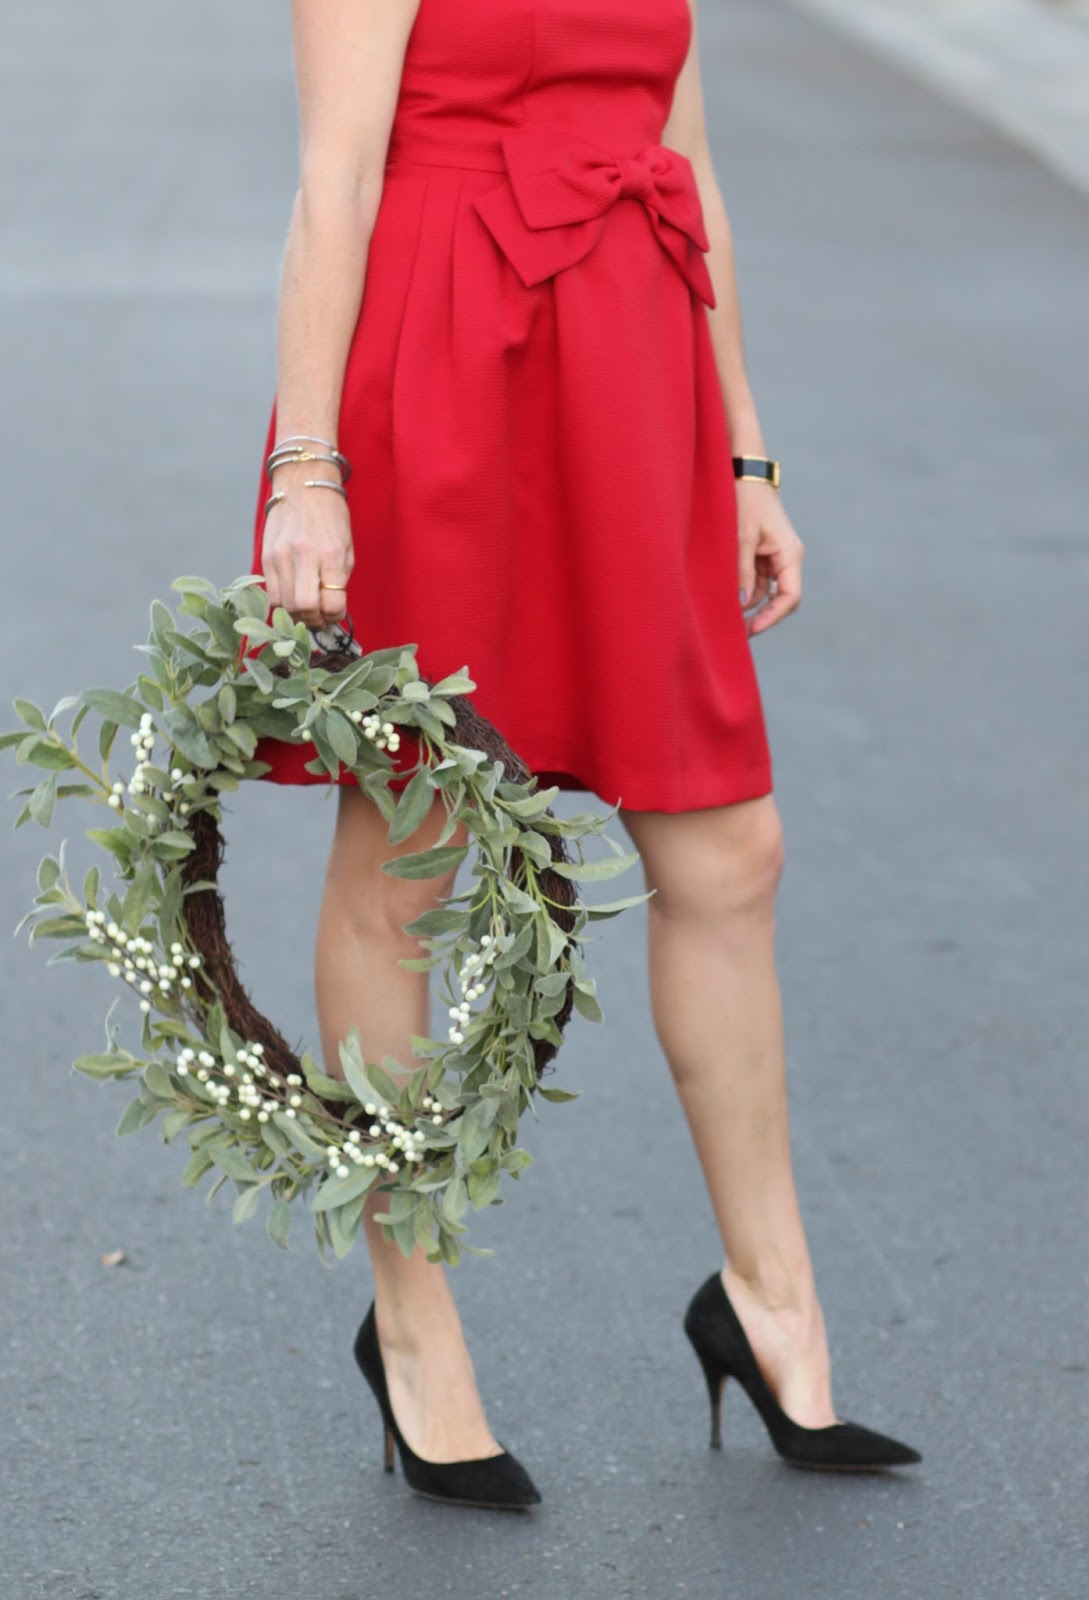 magnolia wreath and holiday outfit